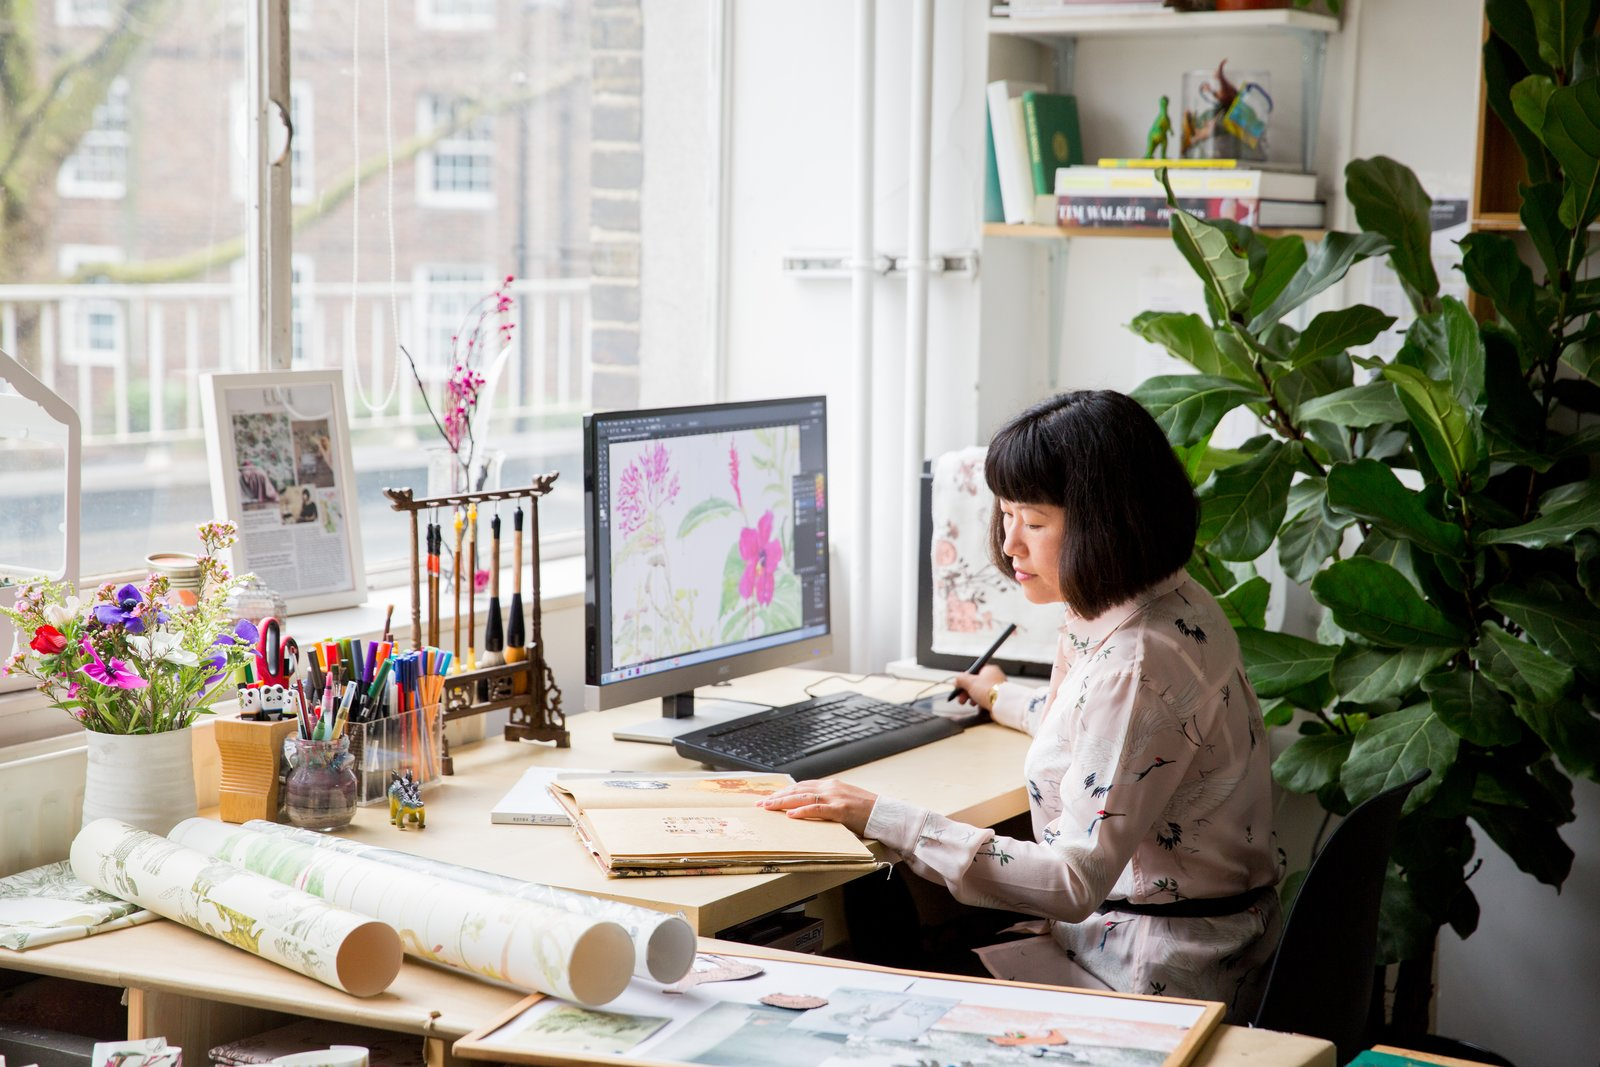 Born in China, Sian Zeng moved to Hungary with her parents when she was seven. She later relocated to London, where she studied textile design at Central Saint Martins, and now lives with her husband.